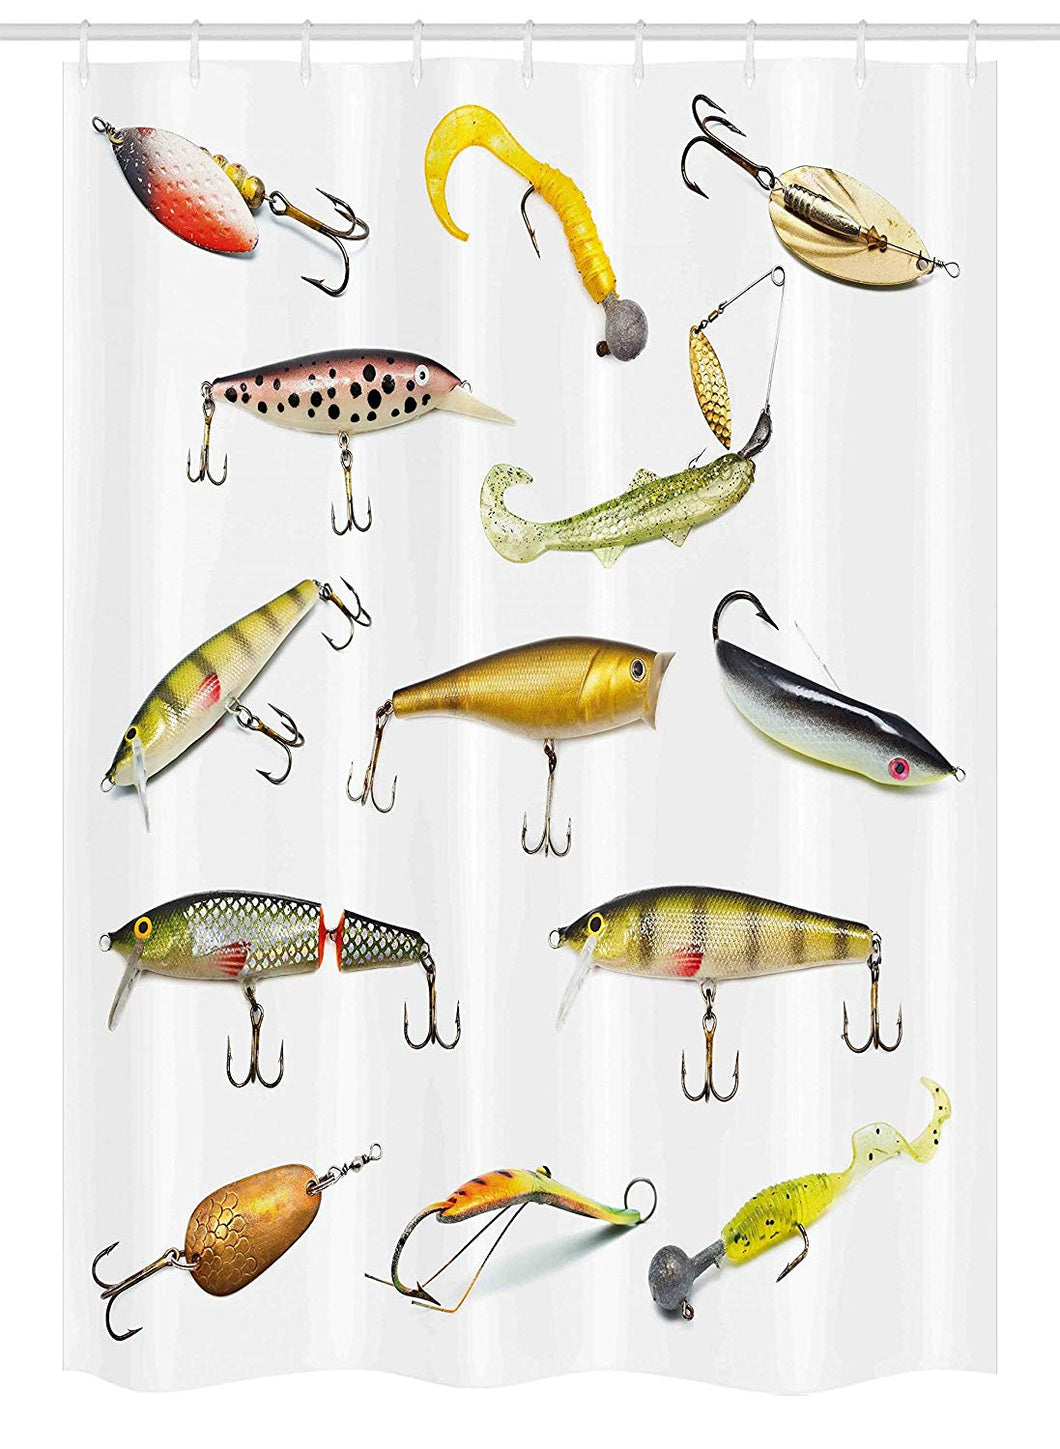 Ambesonne Fishing Decor Stall Shower Curtain, Fishing Tackle Bait for Spearing Trapping Catching Aquatic Animals Molluscs Design, Fabric Bathroom Decor Set with Hooks, 54 W x 78 L Inches, Multi